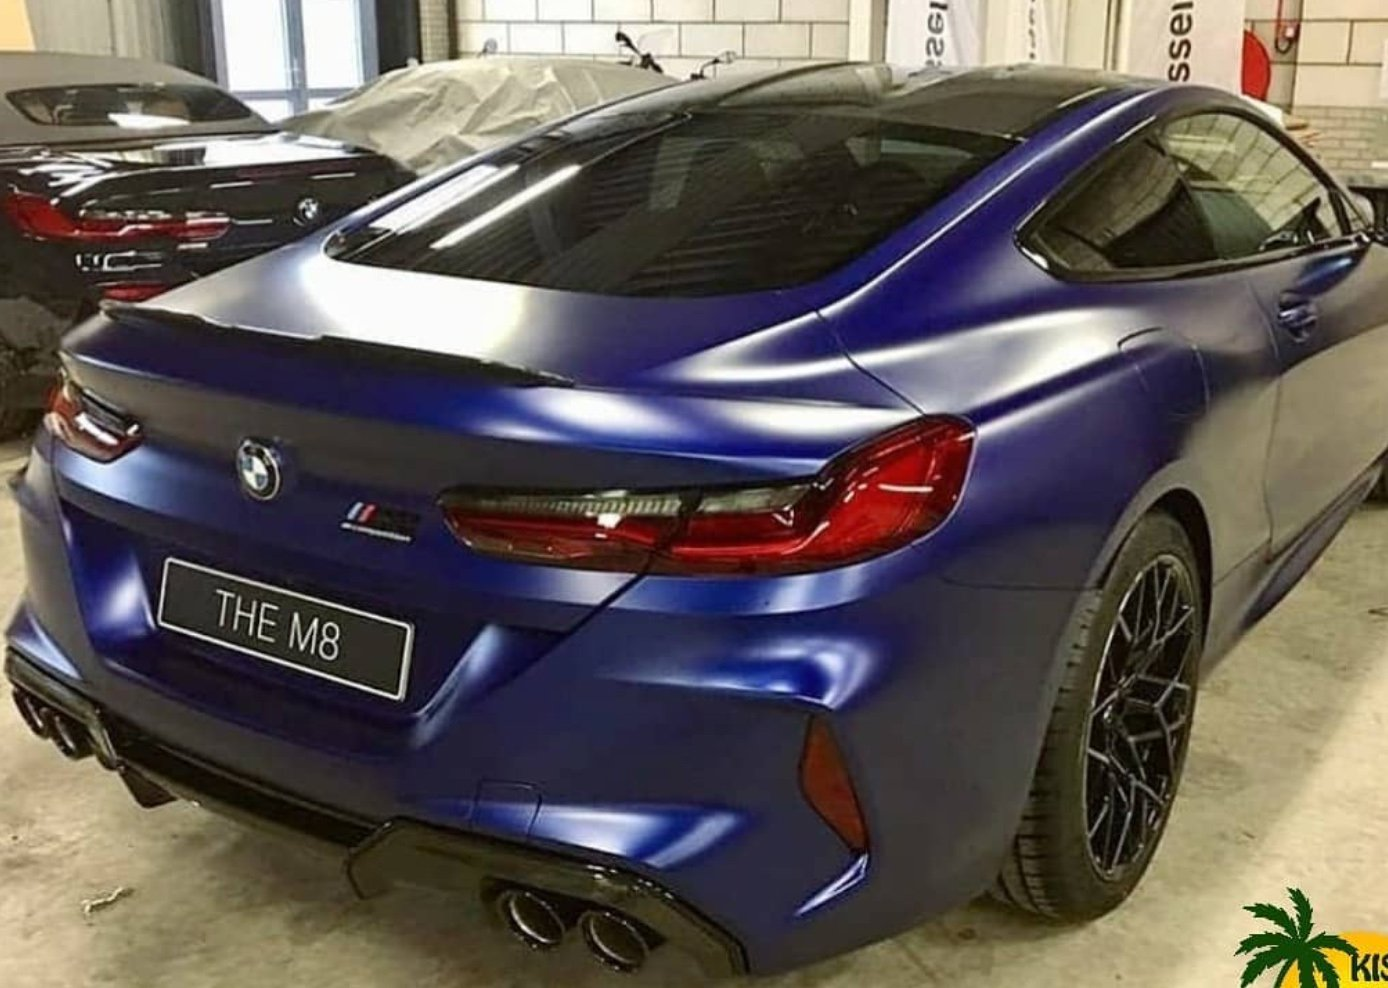 92 The Best 2020 BMW M8 Research New